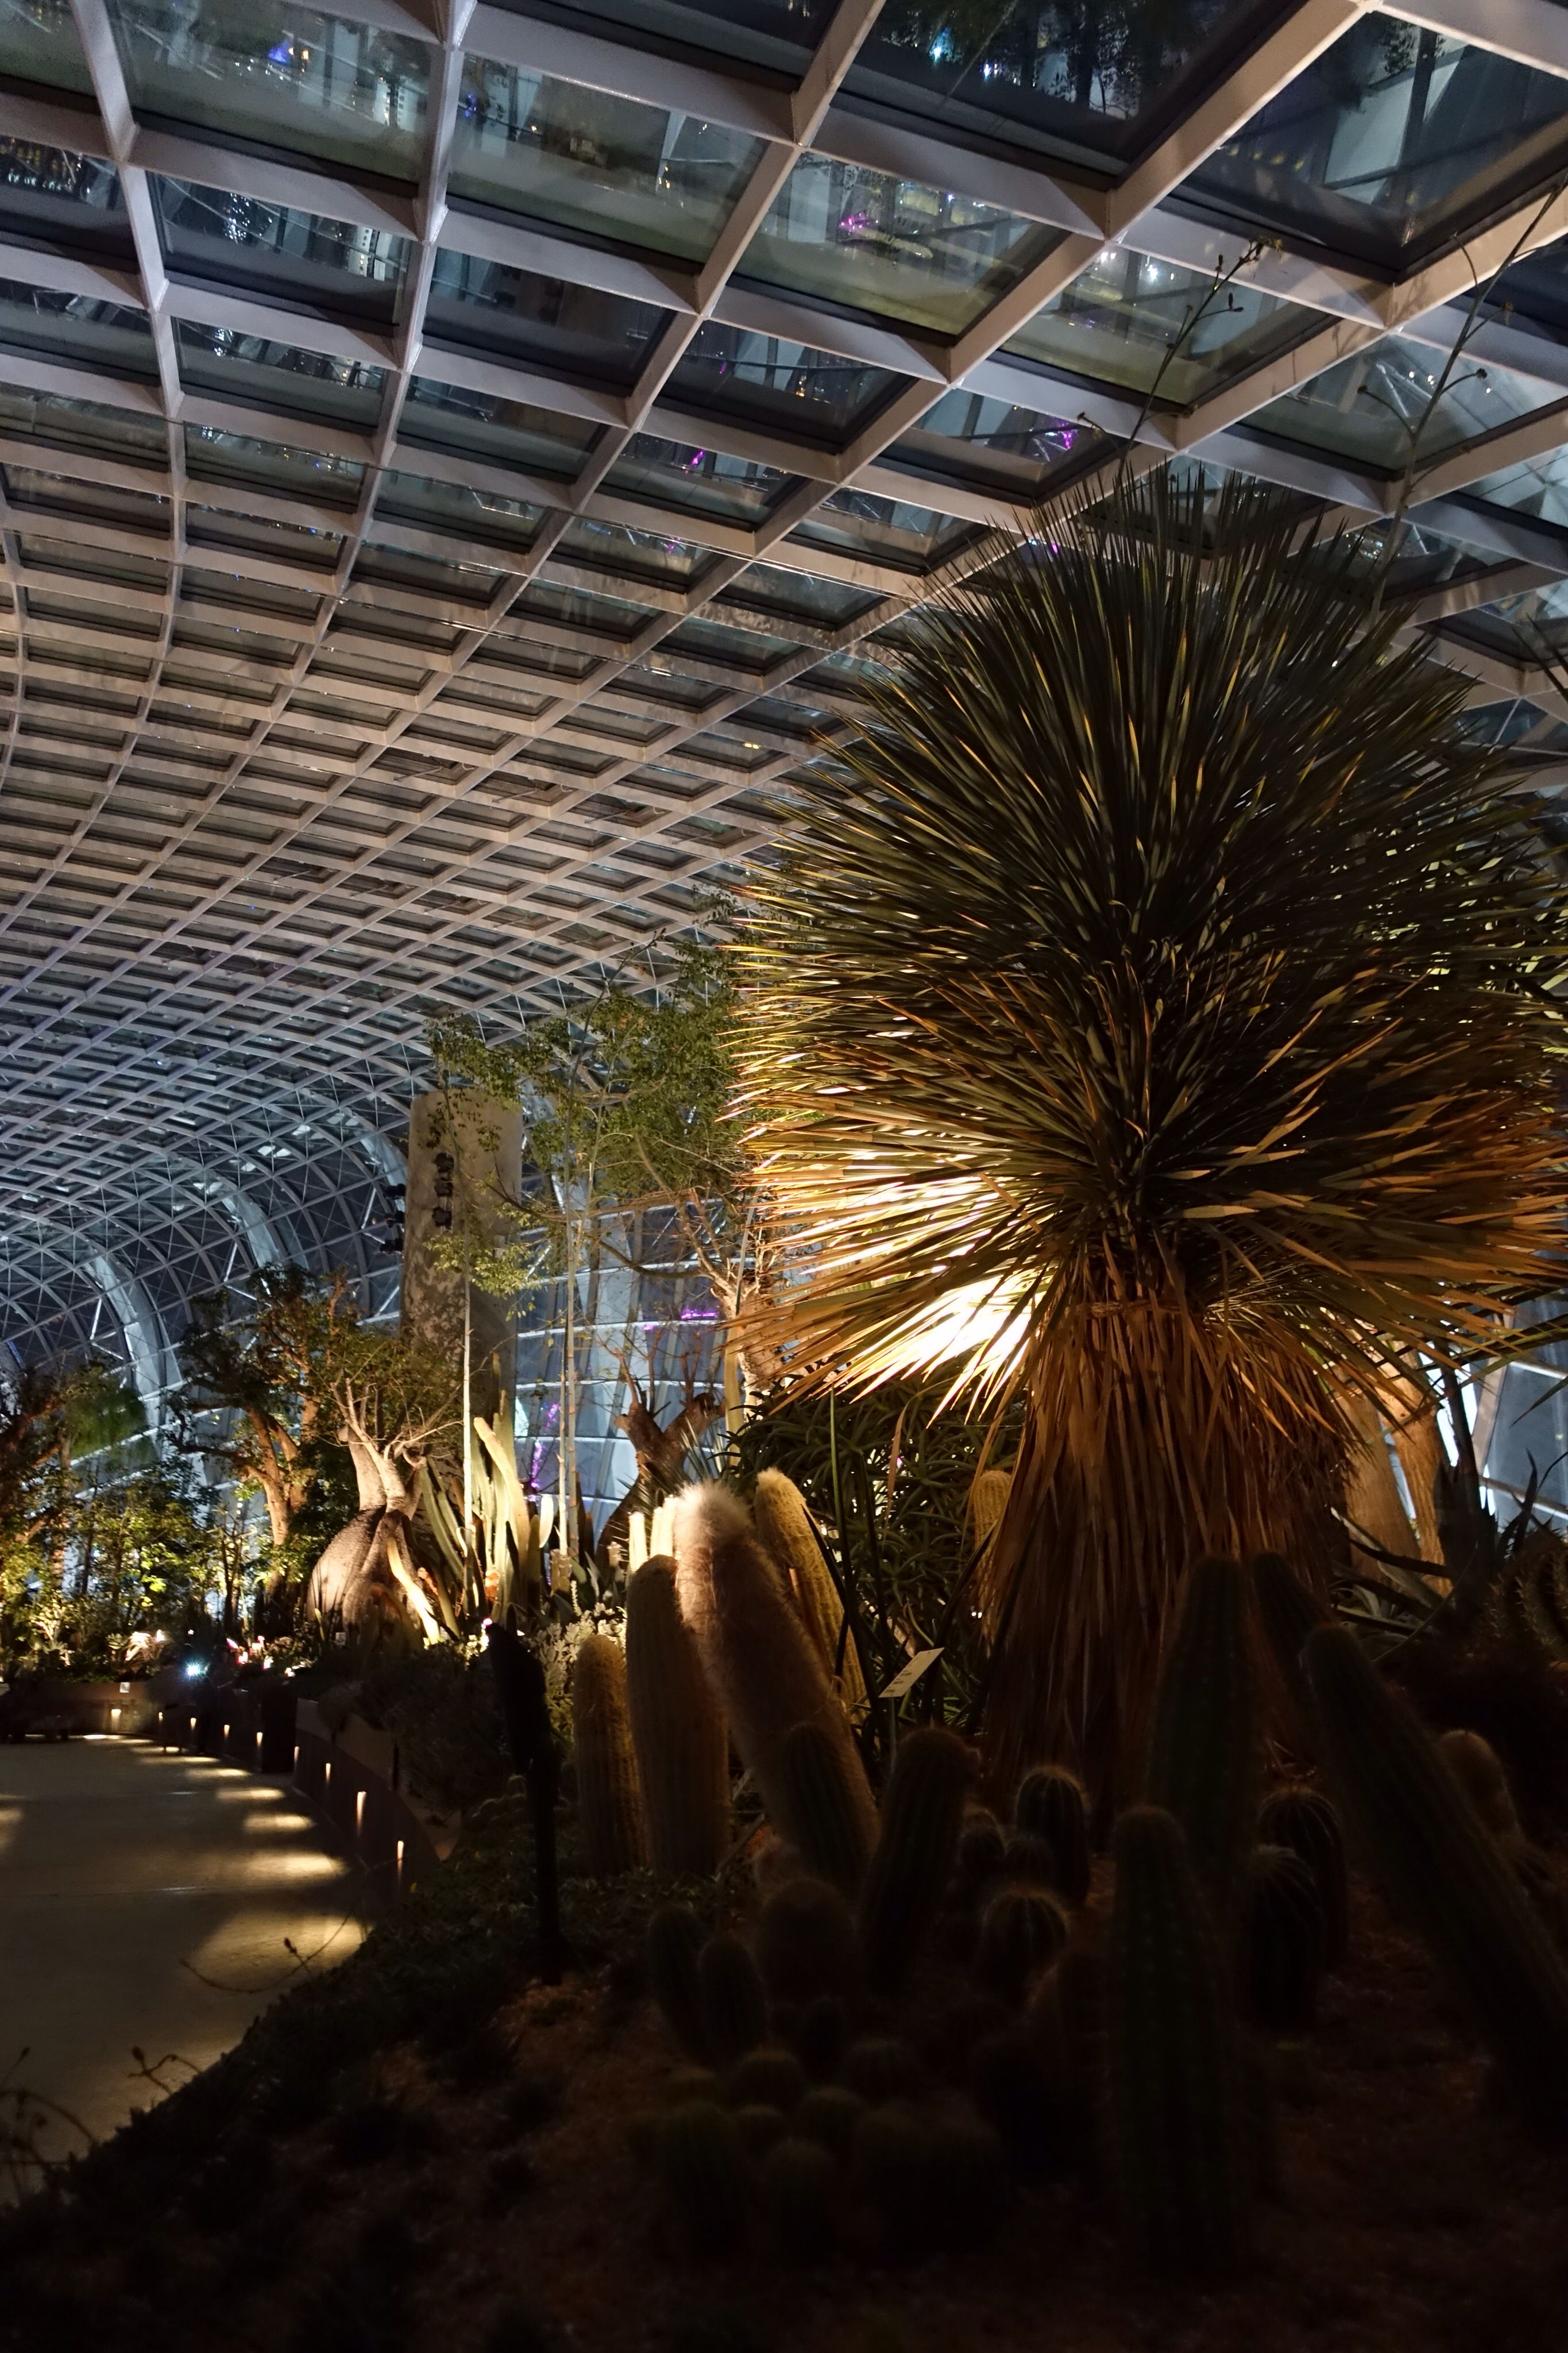 Flower Dome, one of the largest climate-controlled conservatories in ...